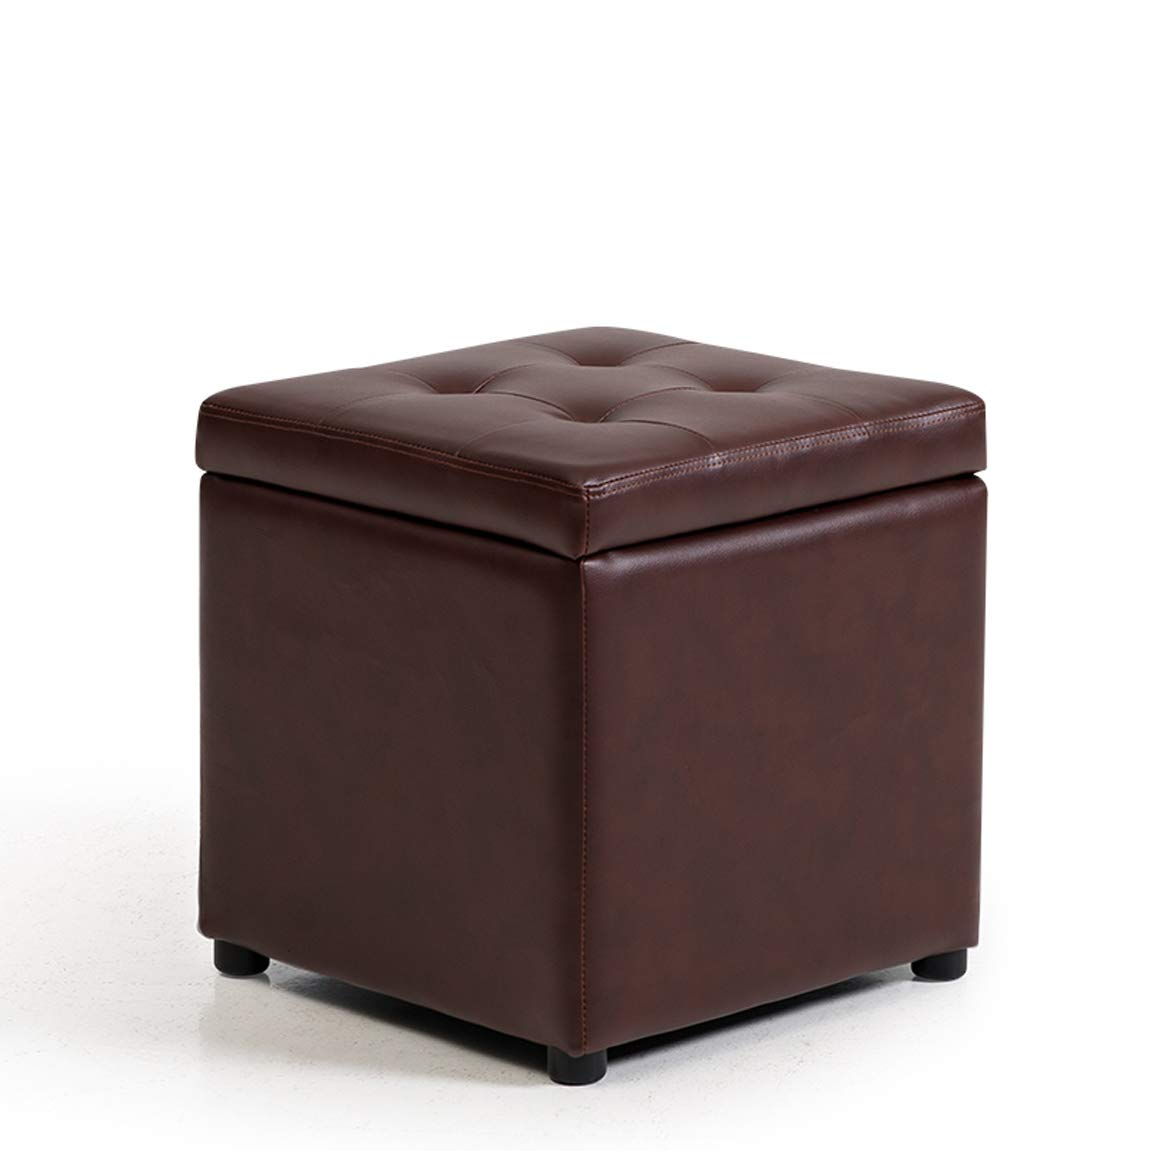 G S 343436 cm CIGONG Storage Stool Leather Bench Change shoes Stool Pier Hall Sofa Stool Storage Stool Low Stool Footstool shoes Bench Stool 34x34x36cm 40x40x40cm Wooden Bench (color   B, Size   L 40  40  40 cm)